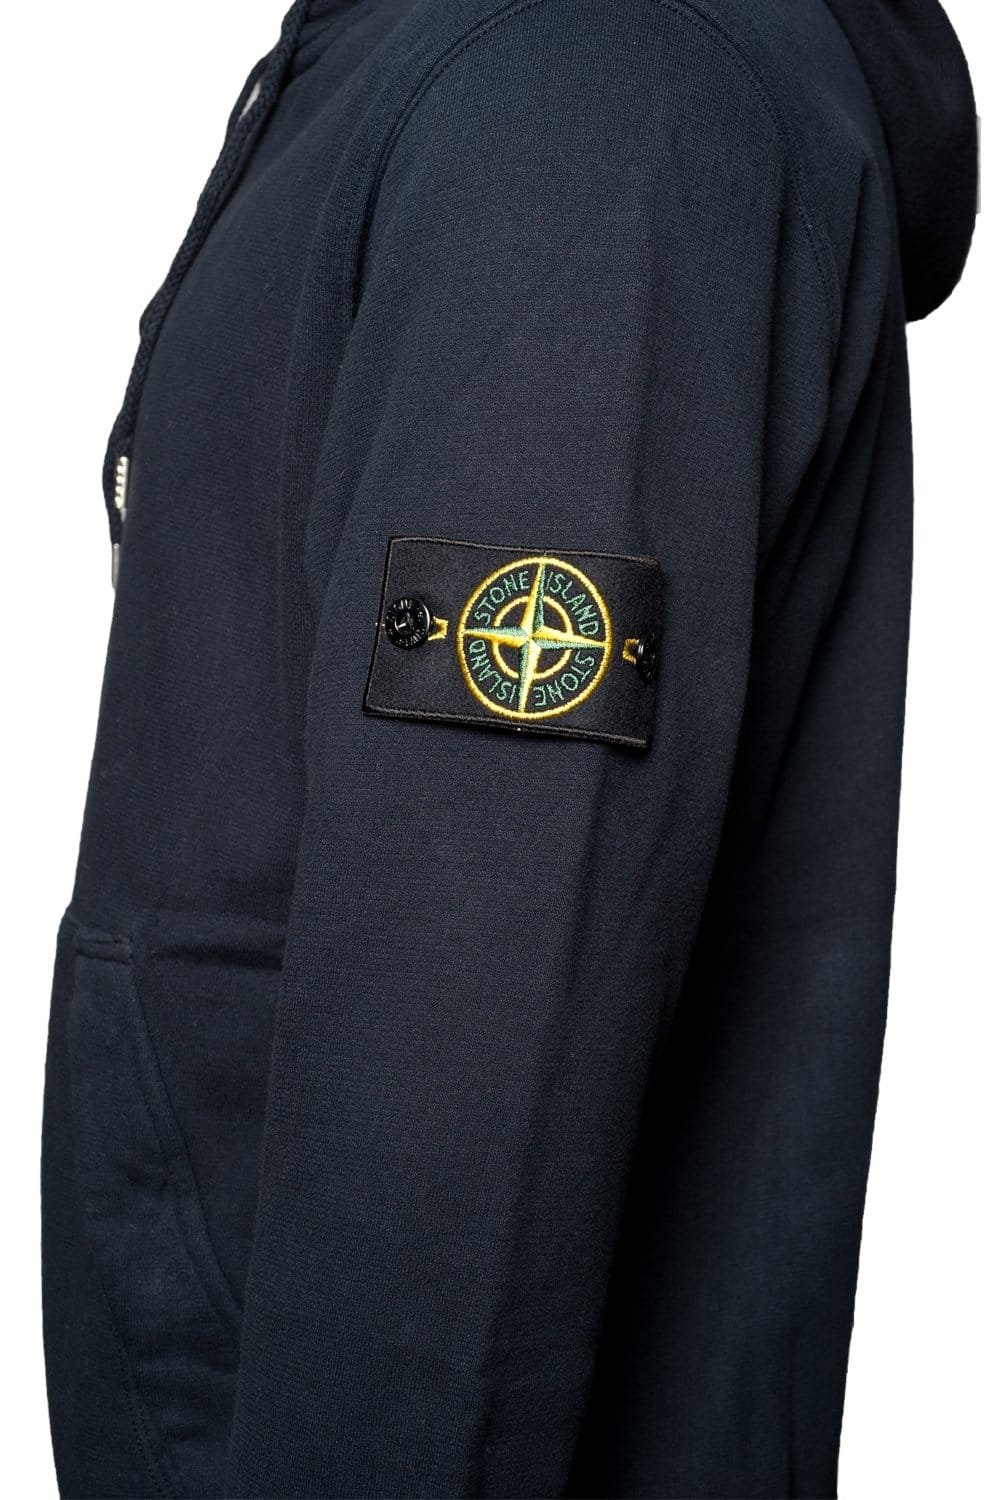 stone island full zip hooded sweatshirt in black navy blue. Black Bedroom Furniture Sets. Home Design Ideas